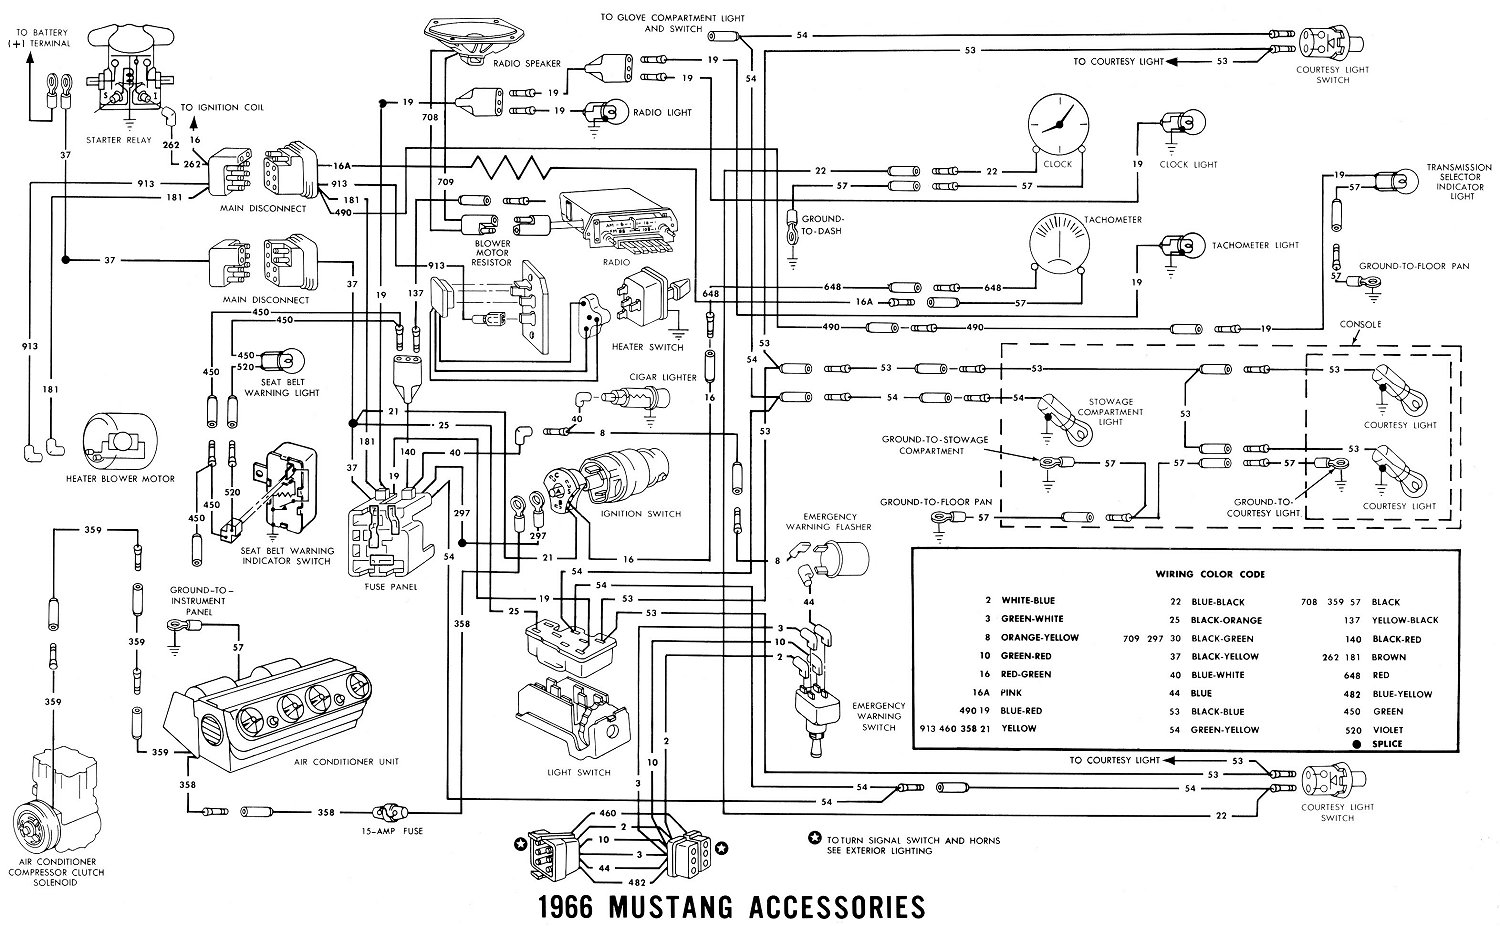 1968 Mustang Wiring Diagram Vacuum Schematics moreover Photo 03 besides Delco Radio Wiring Diagram 1968 Chevelle also 1967 Ford Mustang Steering Column Wiring Diagram likewise Technik Plan. on 69 ford torino